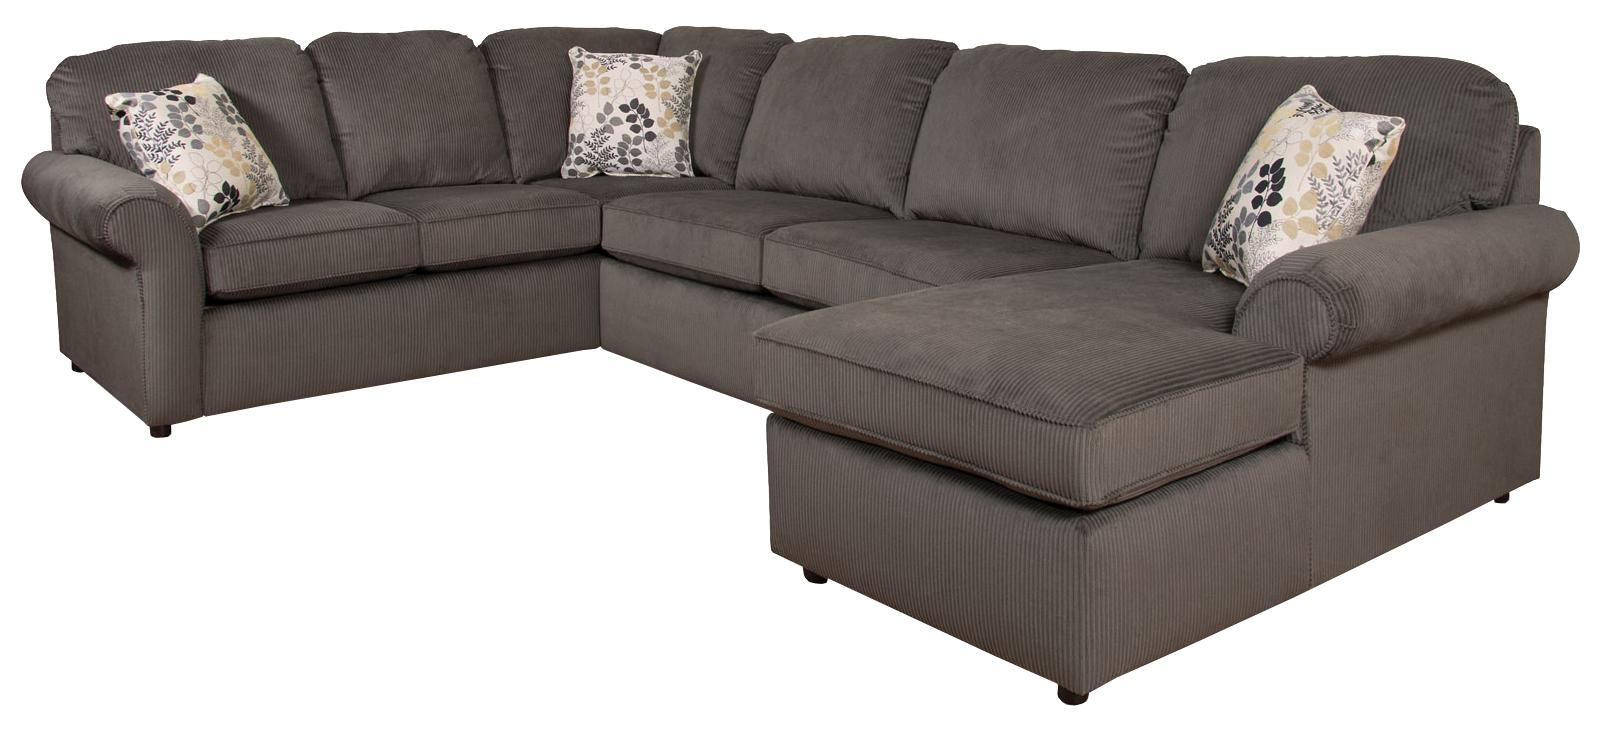 sectionals living at pm screen product copy clayton with room lombardy shot chaise sofa sectional